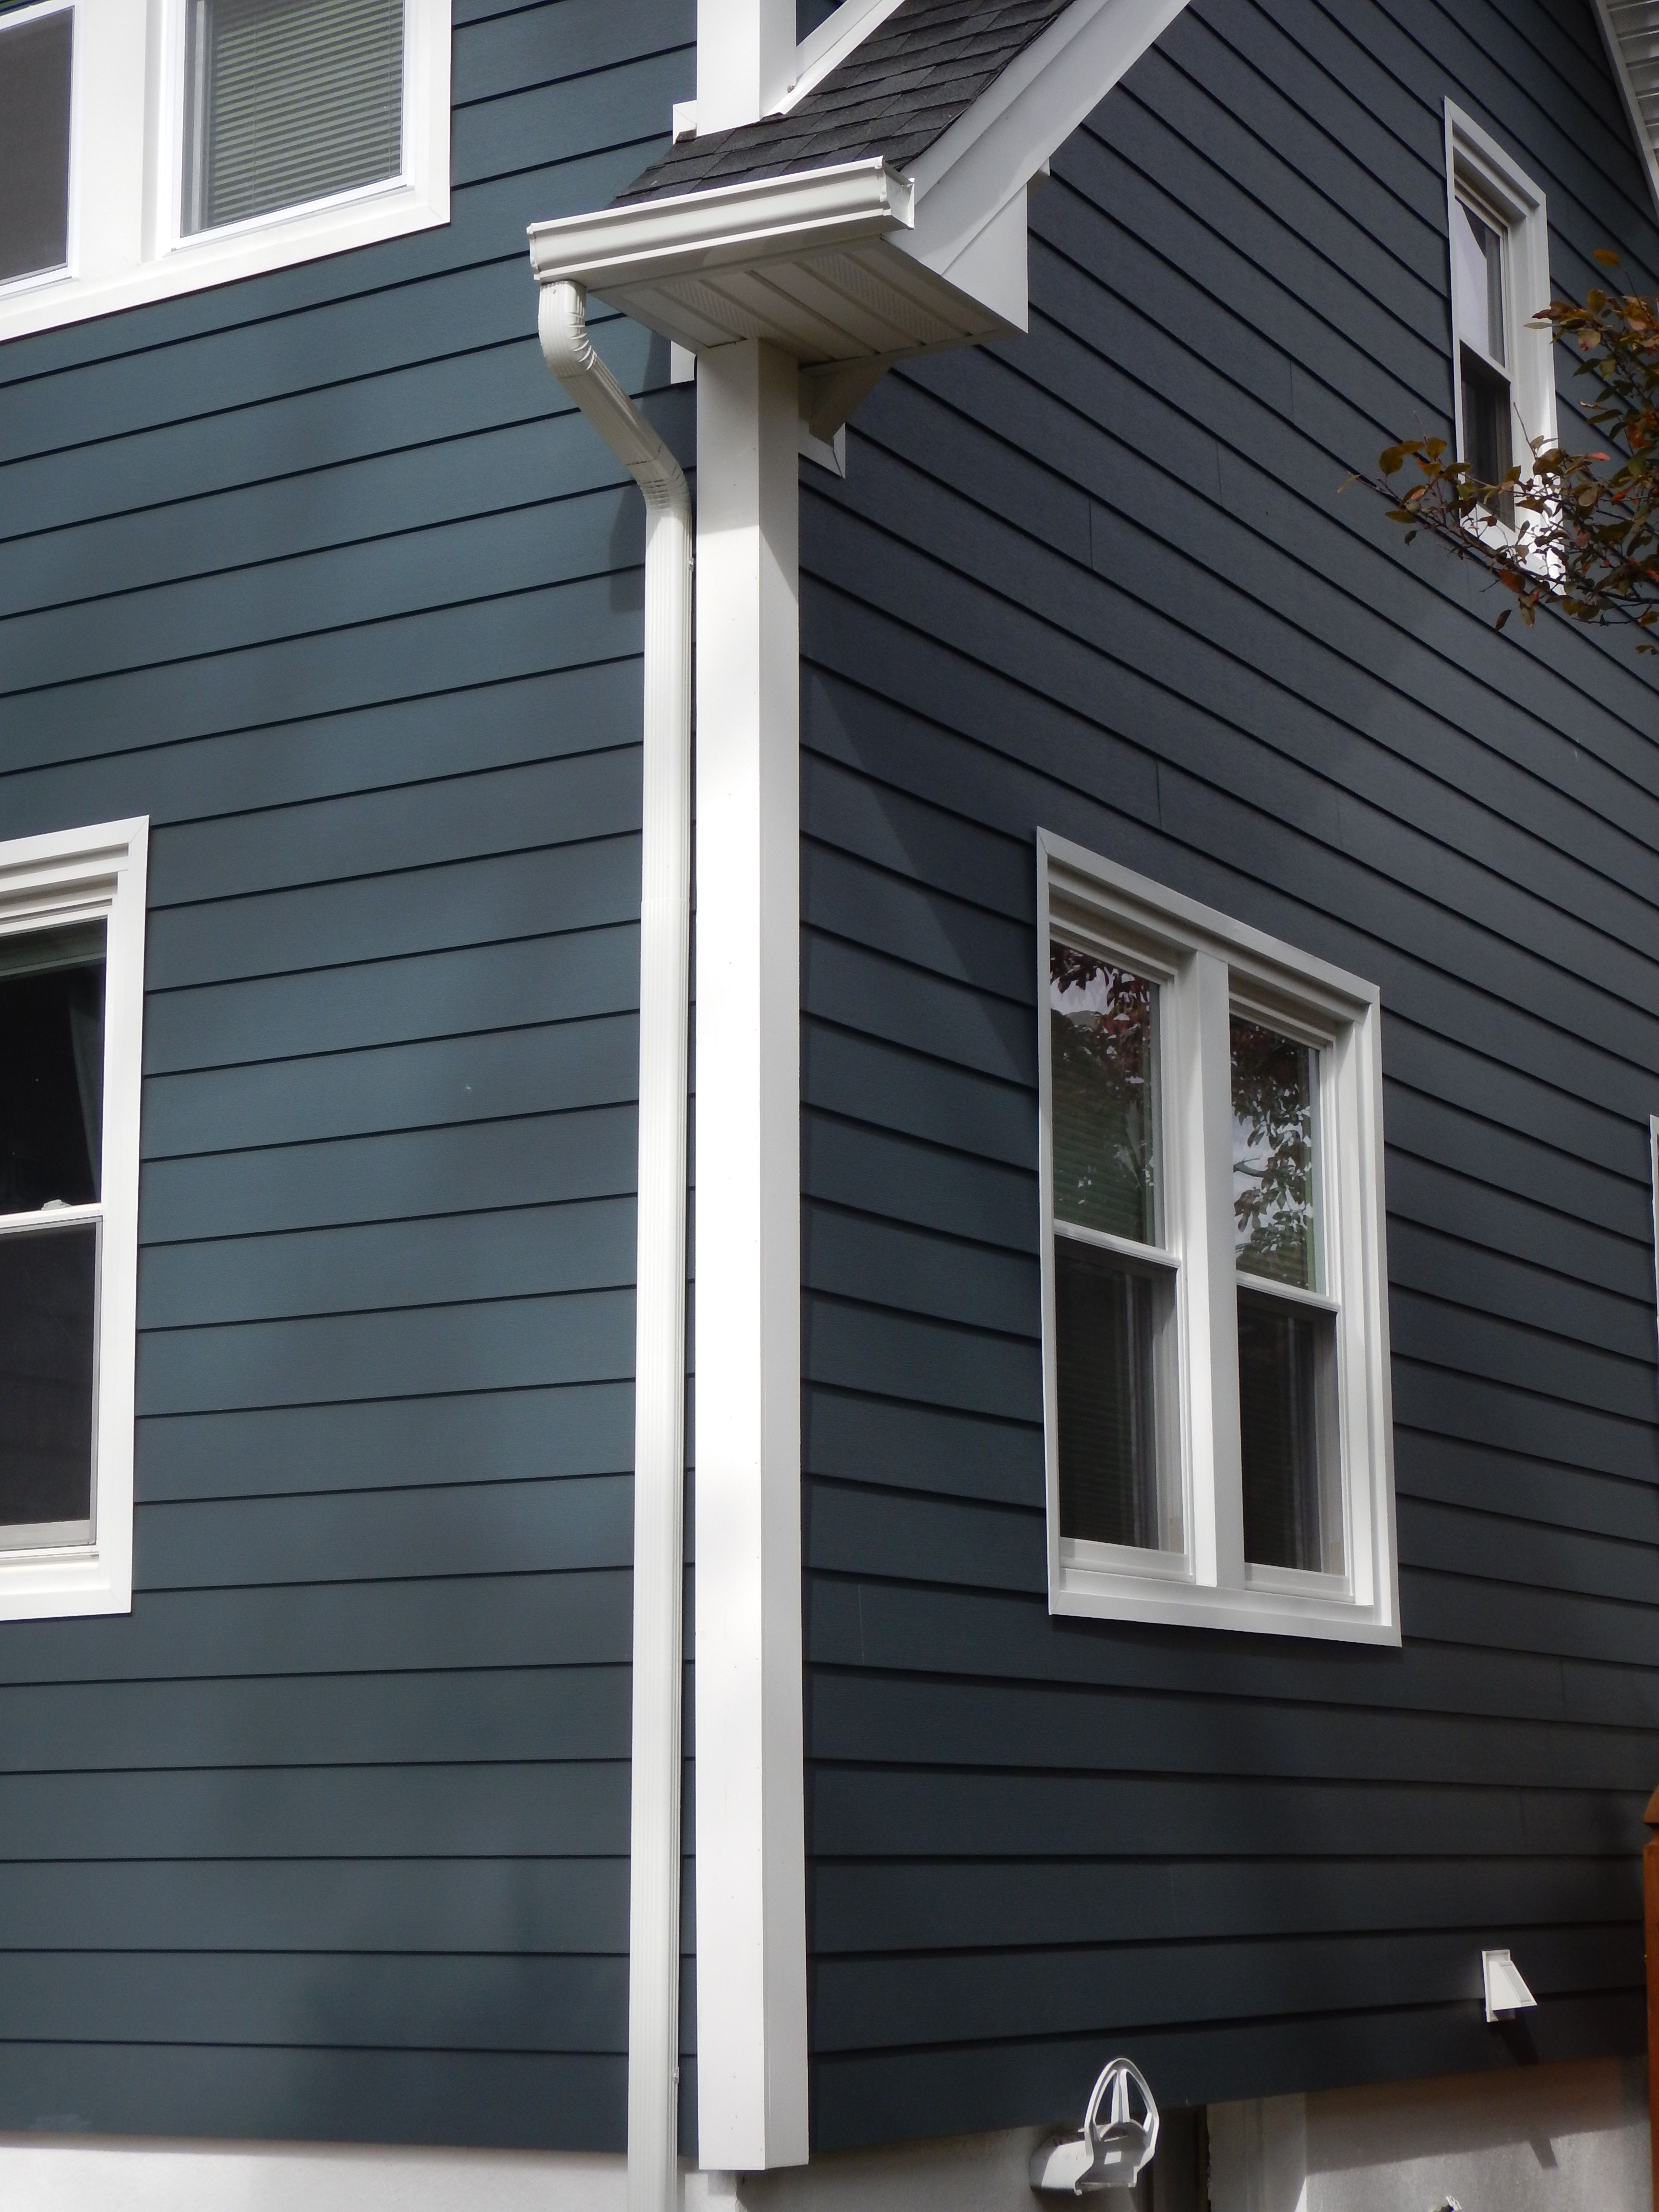 After Installation Of Royal Celect Siding By Royal Building Products In Bergen County Nj Your House Become More B House Cladding Siding Companies Vinyl Siding